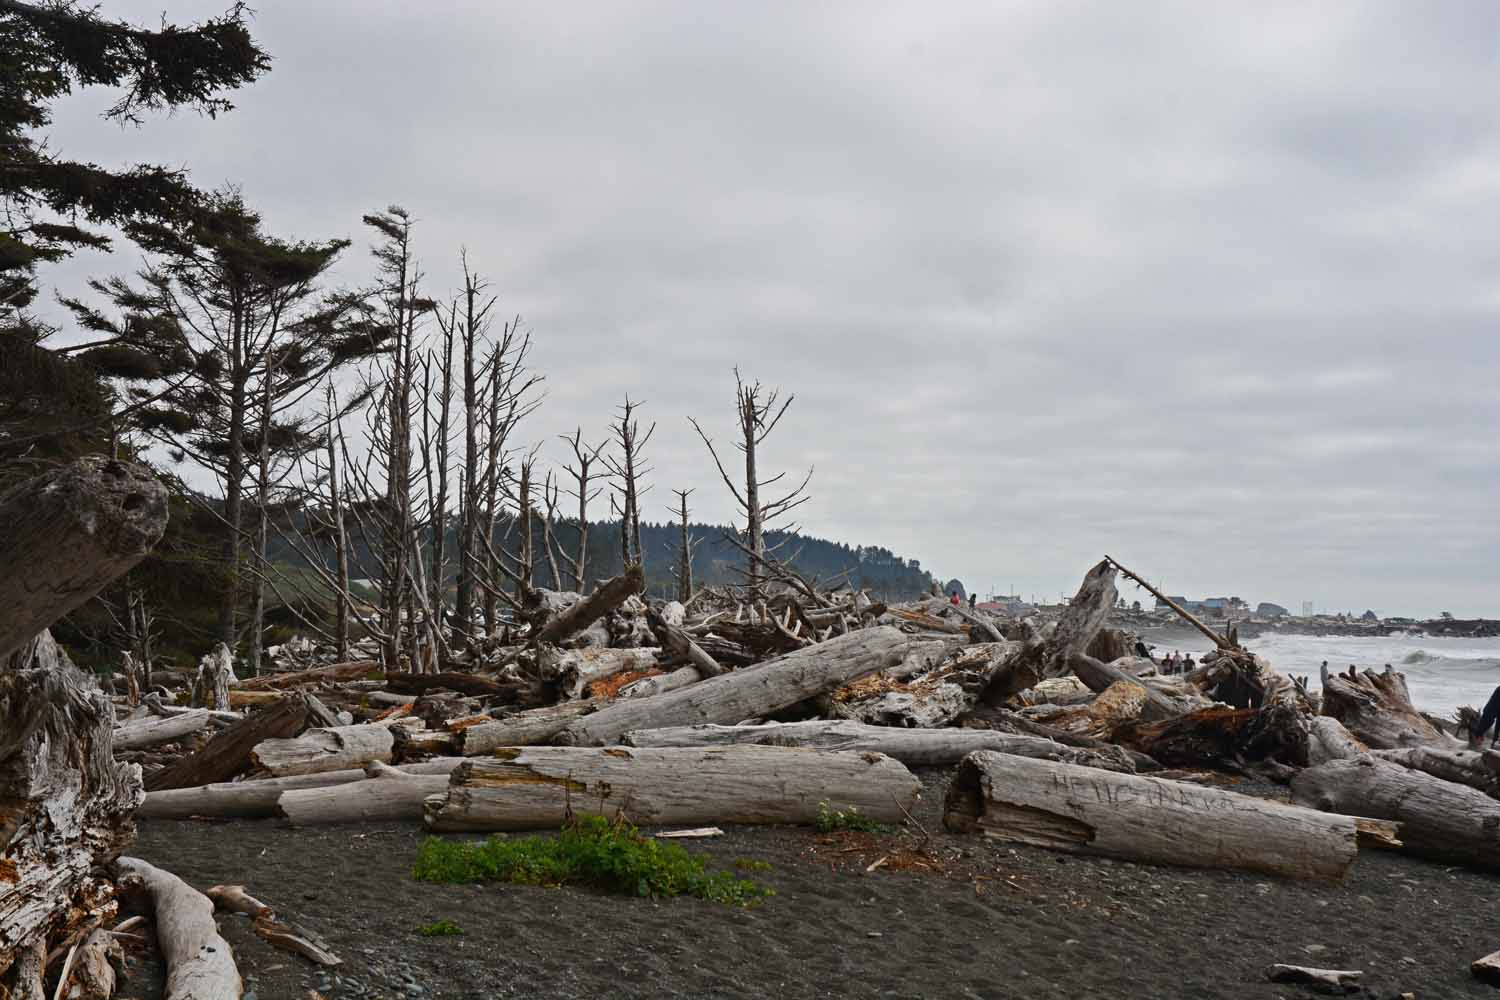 This is Rialto Beach on the ocean.  The setting was certainly unexpected.  The power of the water to bring all these logs ashore is impressive.  We found a great campground here and will certainly stay there next time we visit.